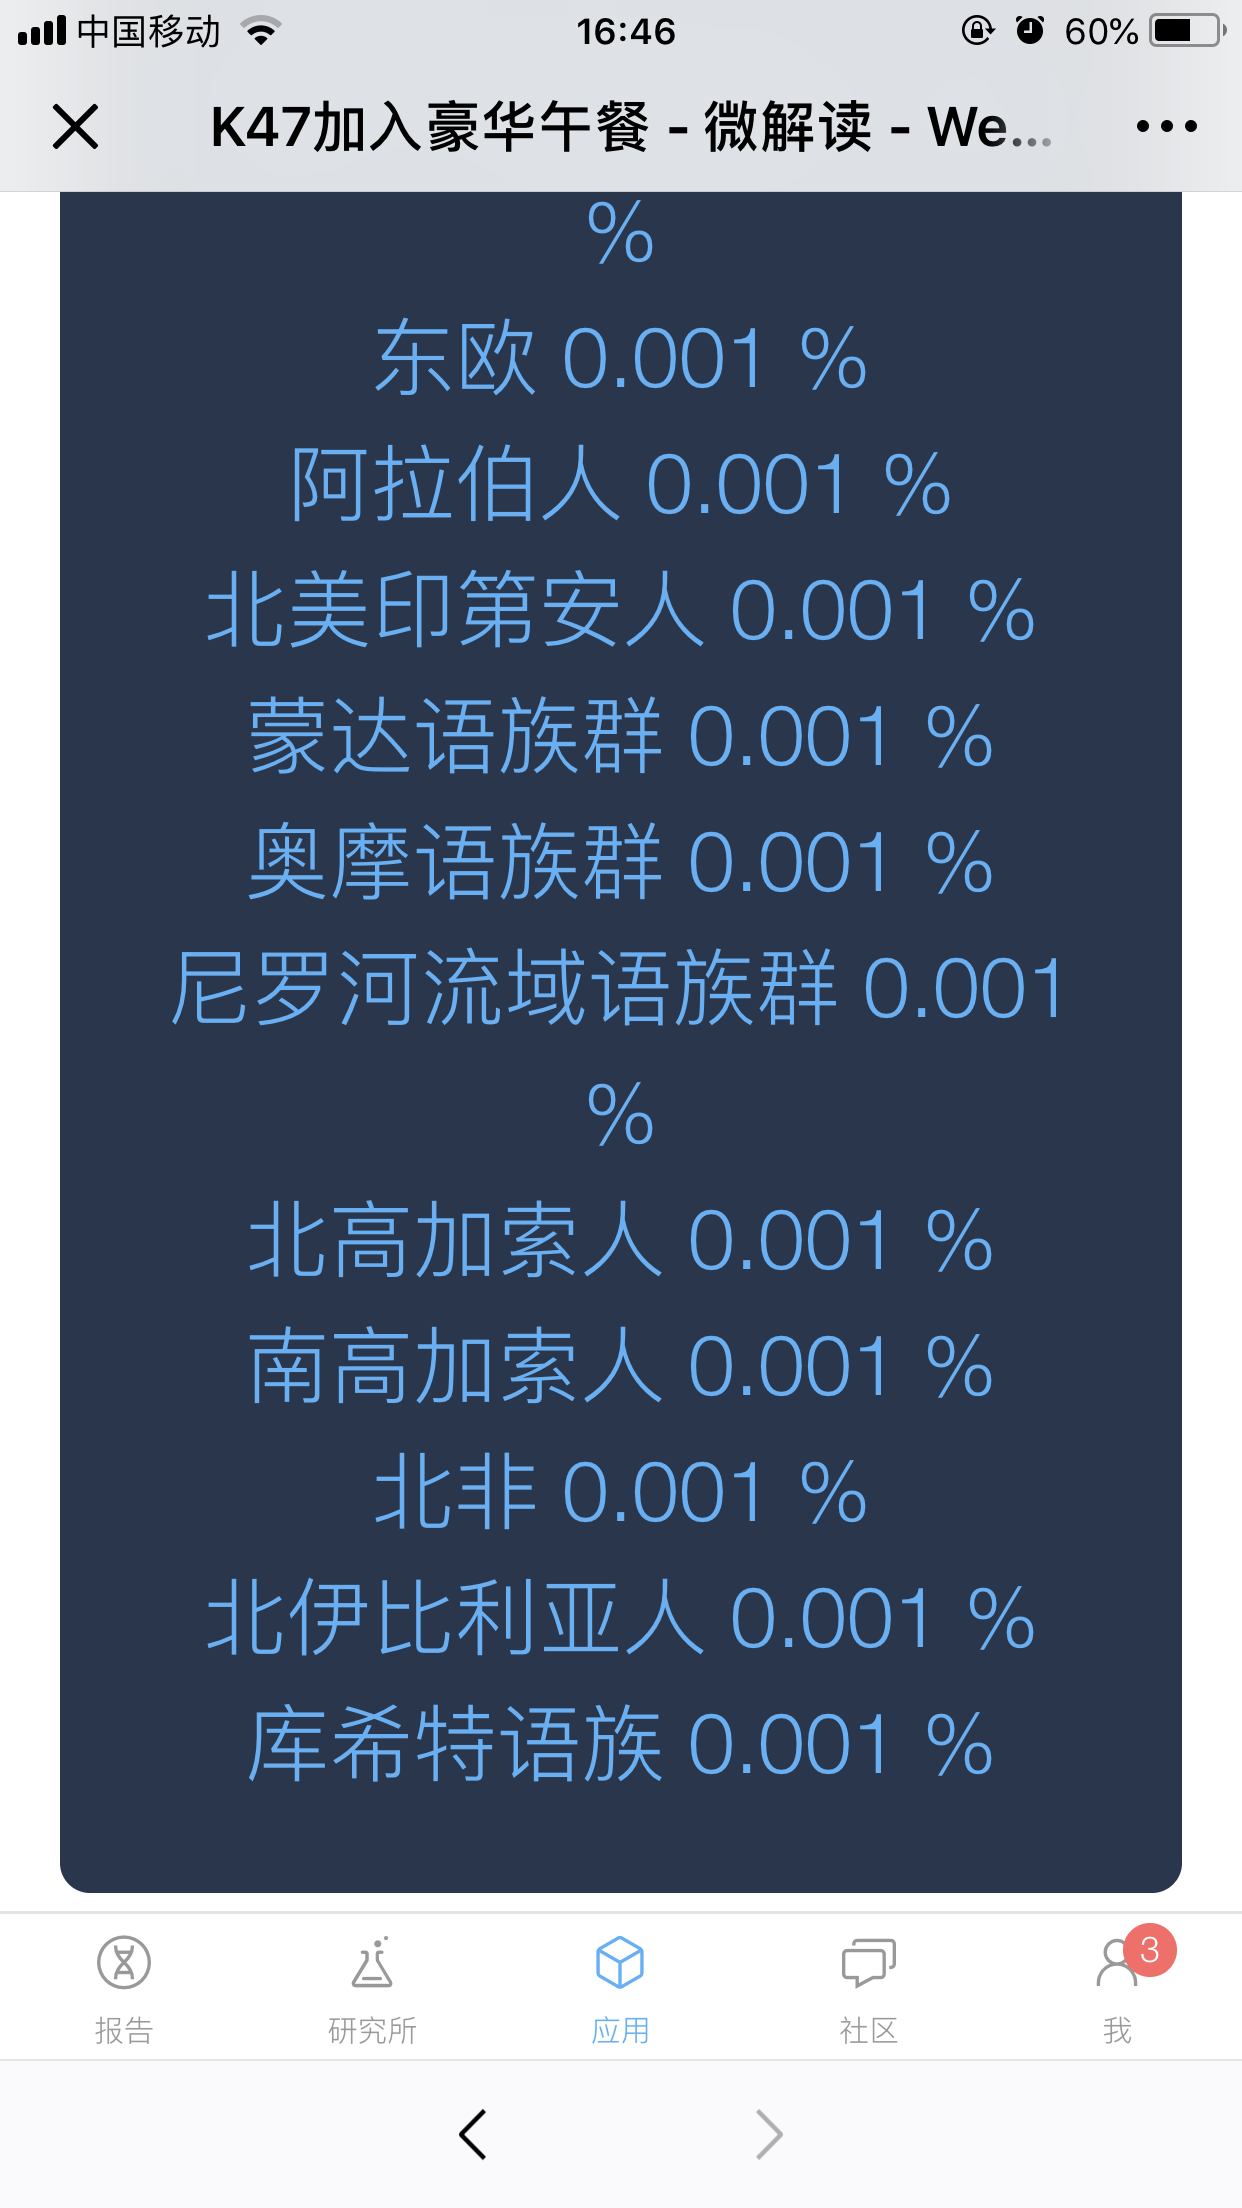 835CCE3A-C9DB-43F0-82F6-A73126381C35.png